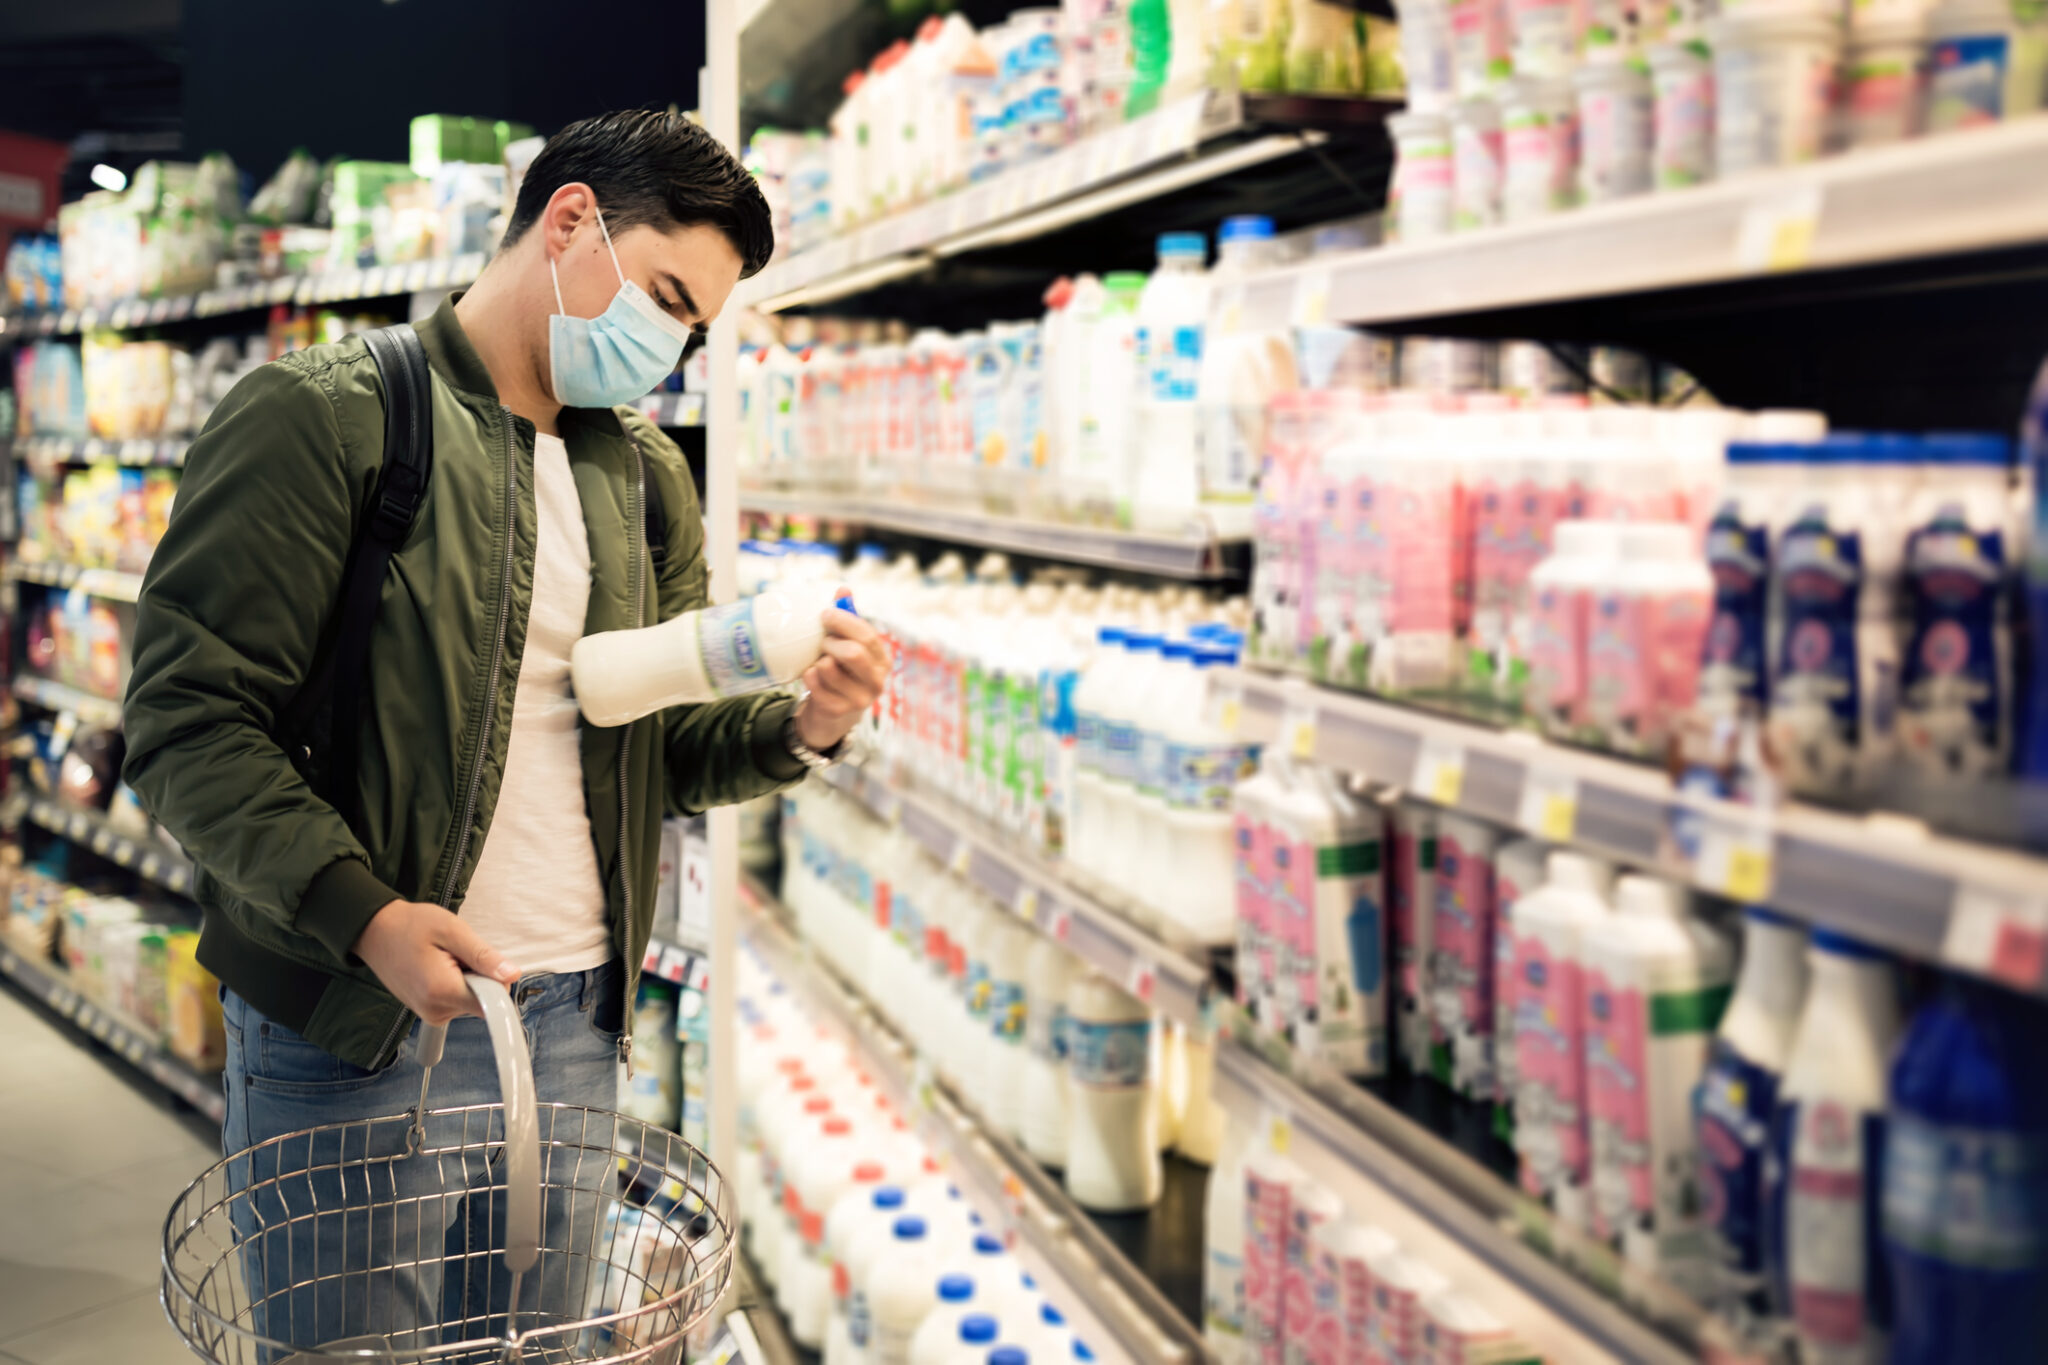 Man shopping in a supermarket, breathing through a medical mask